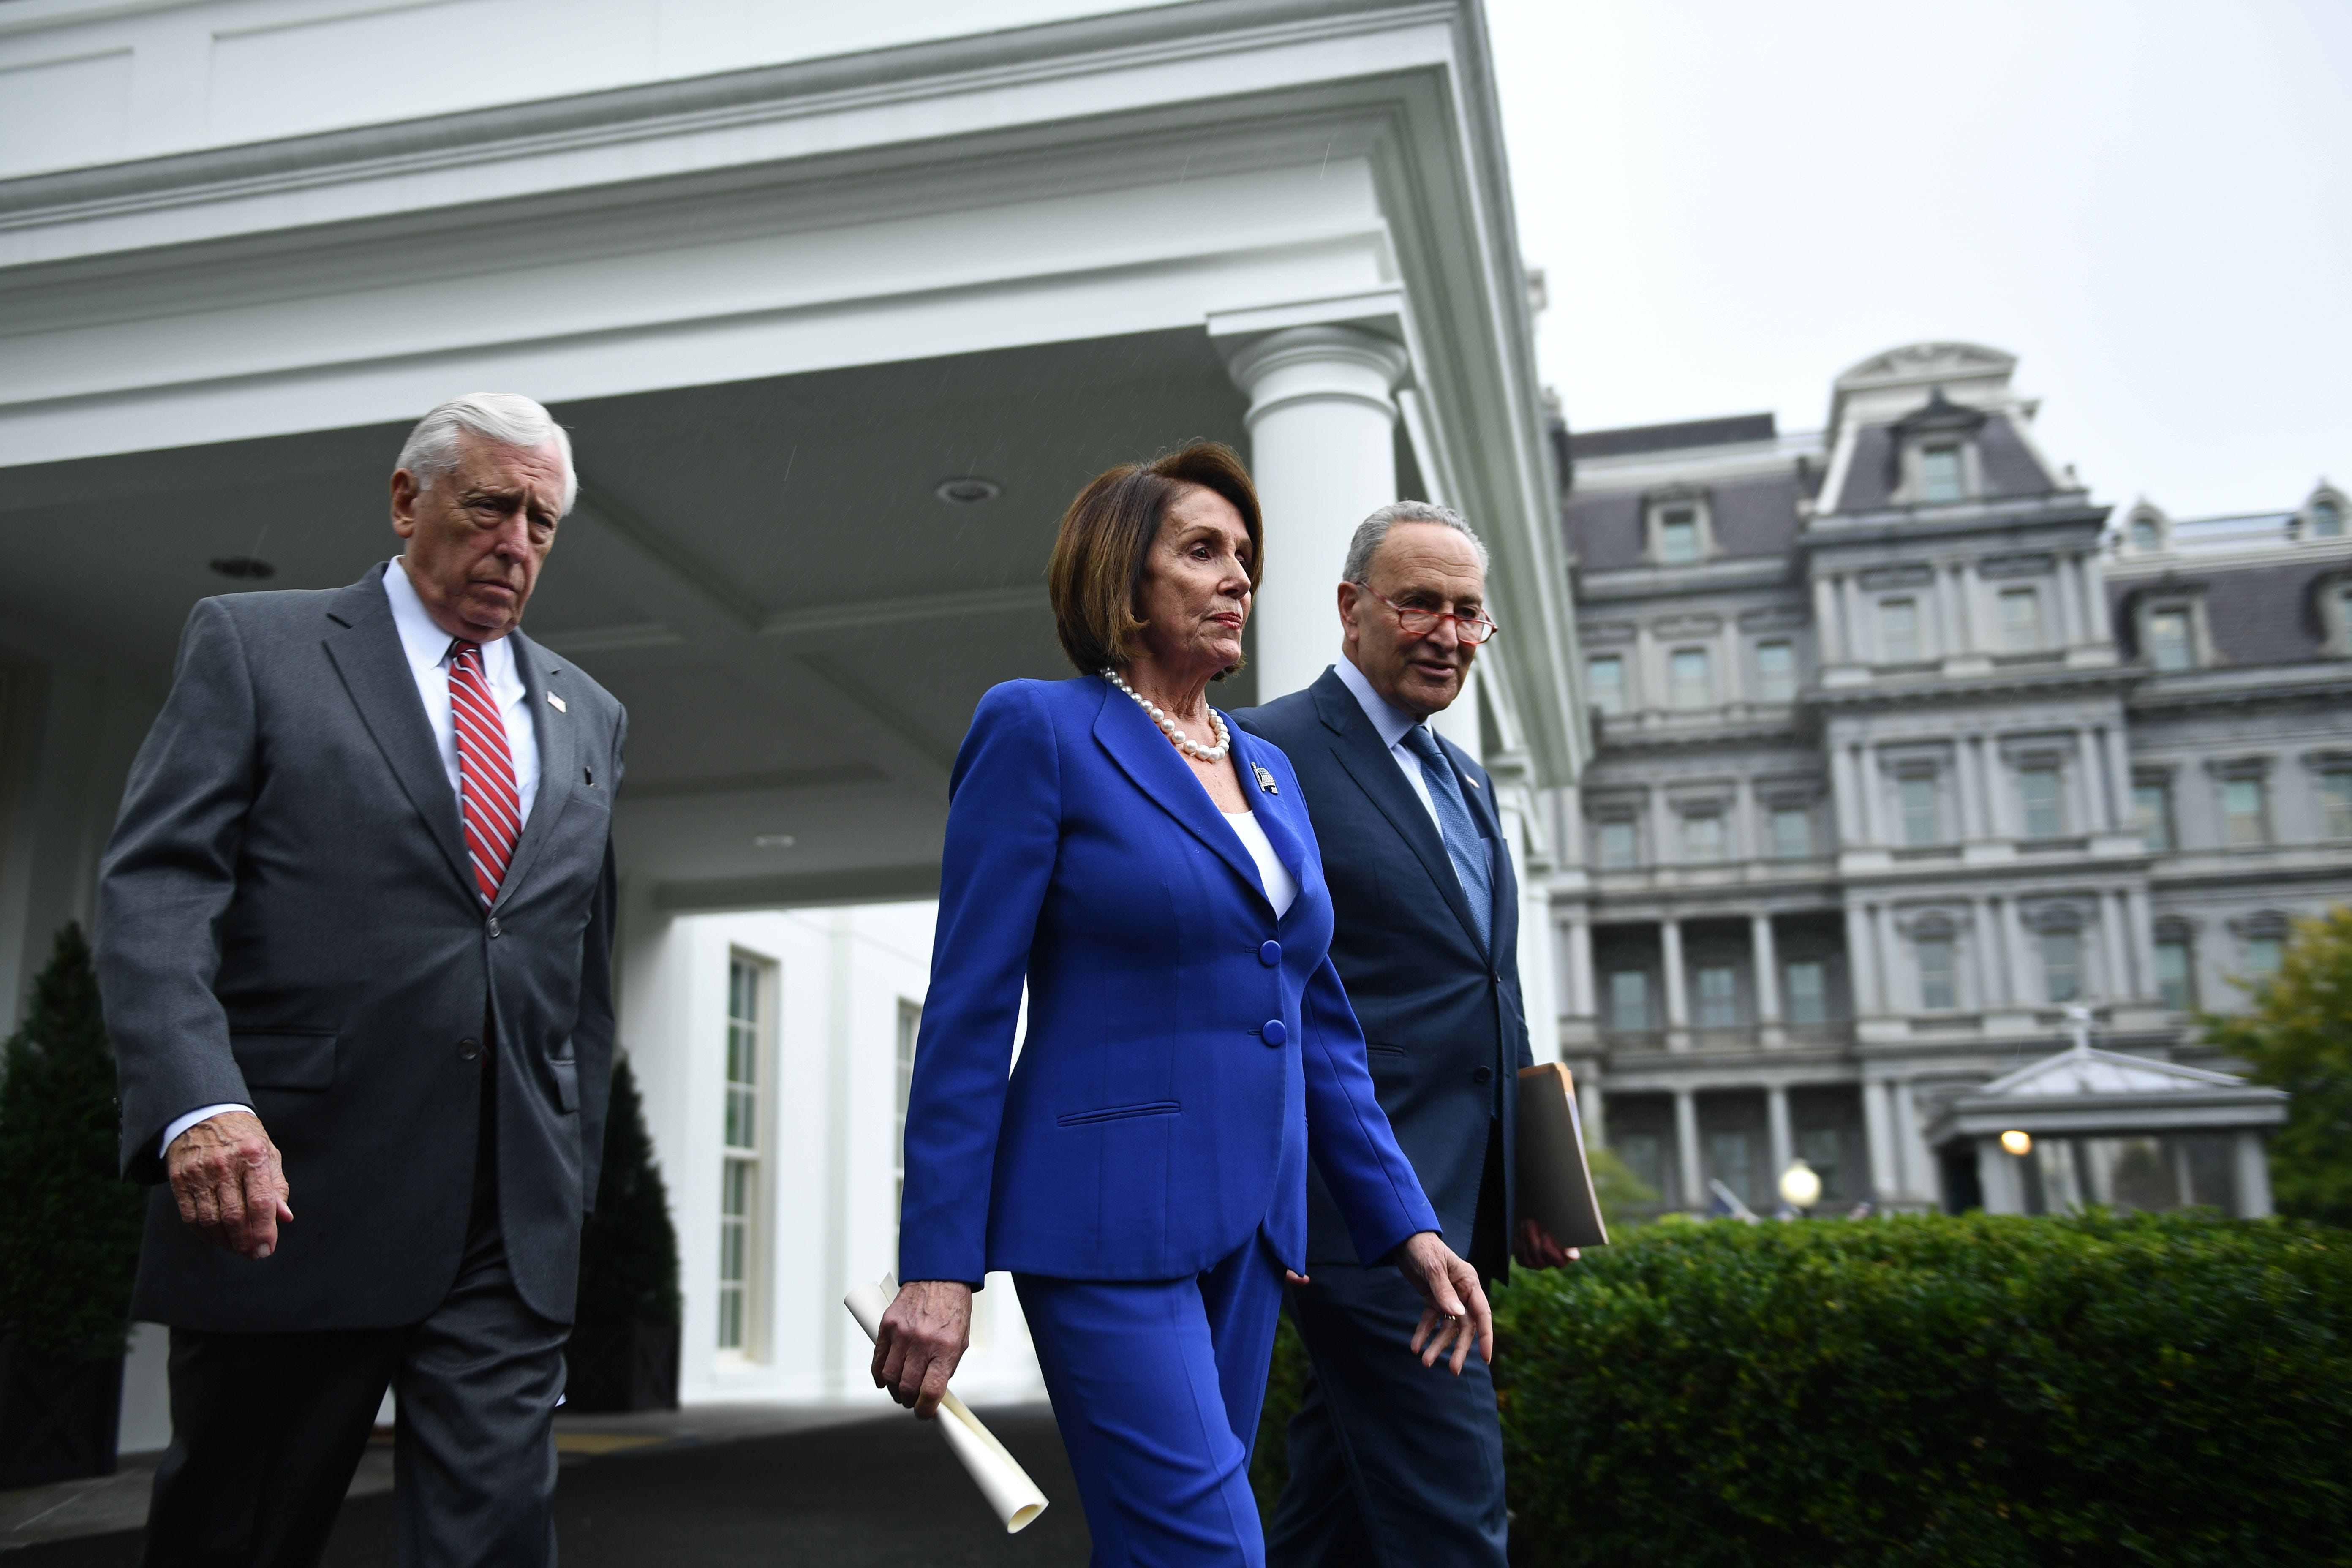 Democratic leaders walk out of meeting with Donald Trump on Syria, claim president had  meltdown